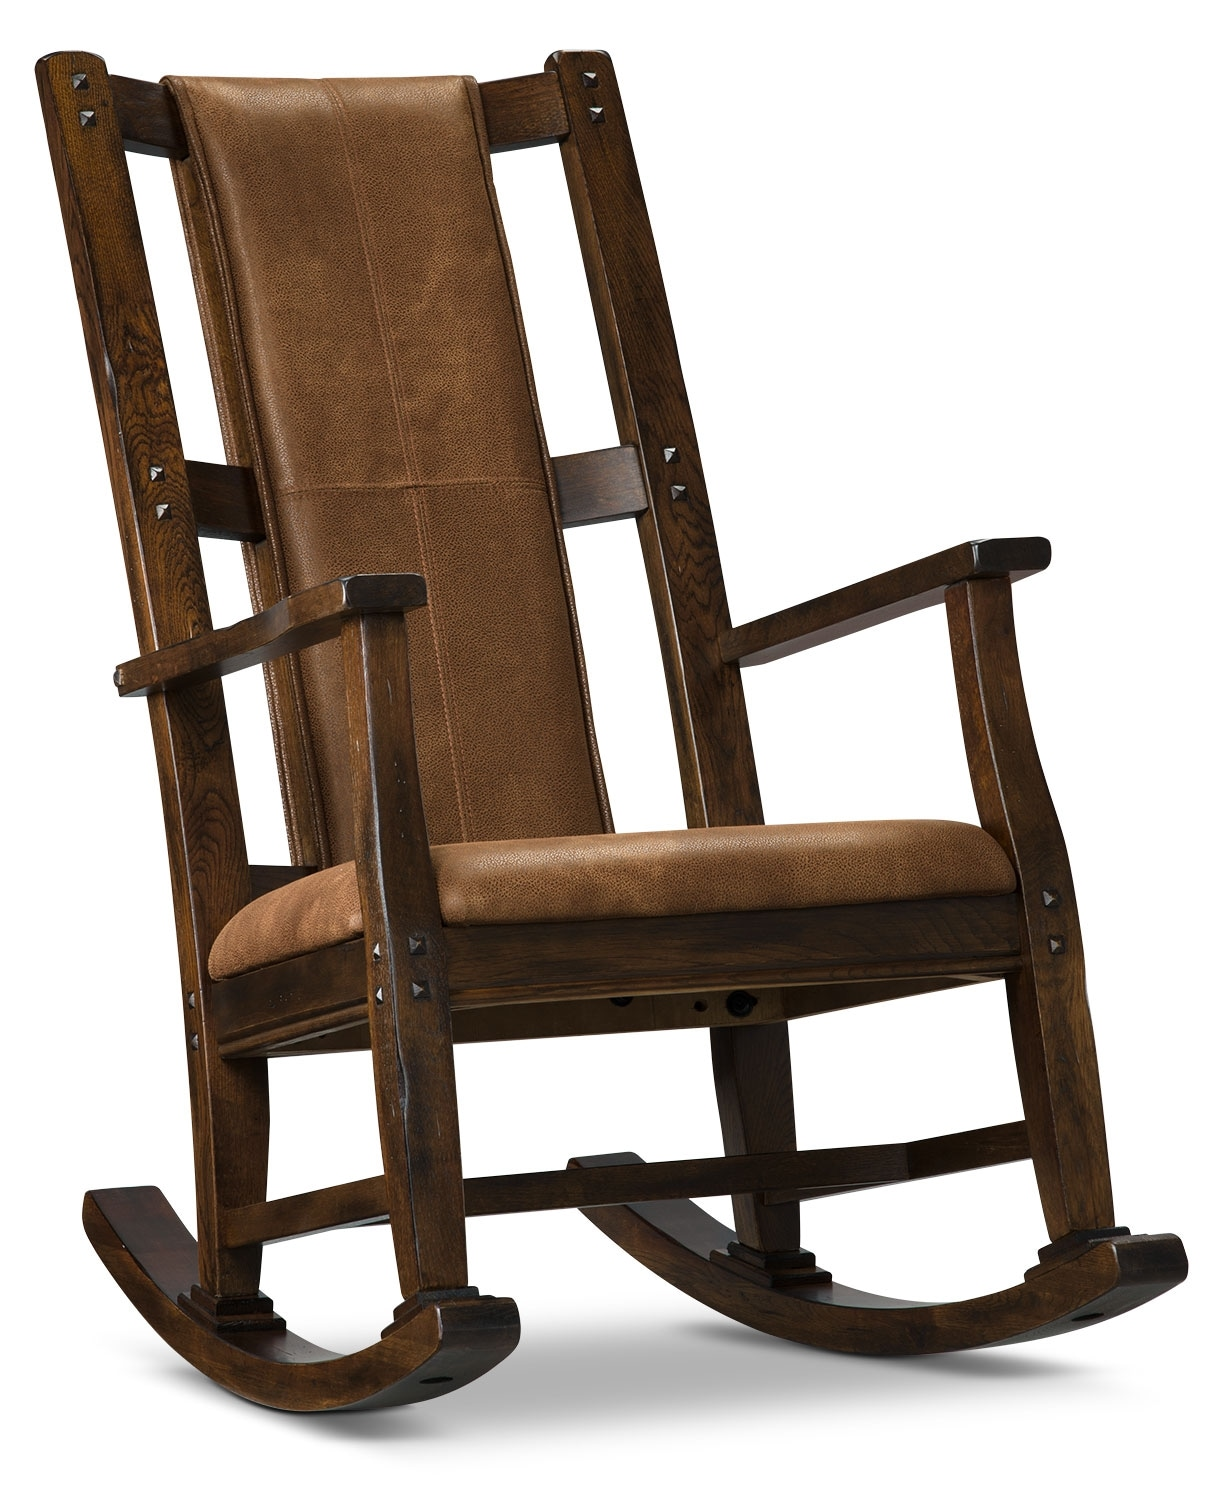 Living Room Furniture - Zenica Rocking Chair